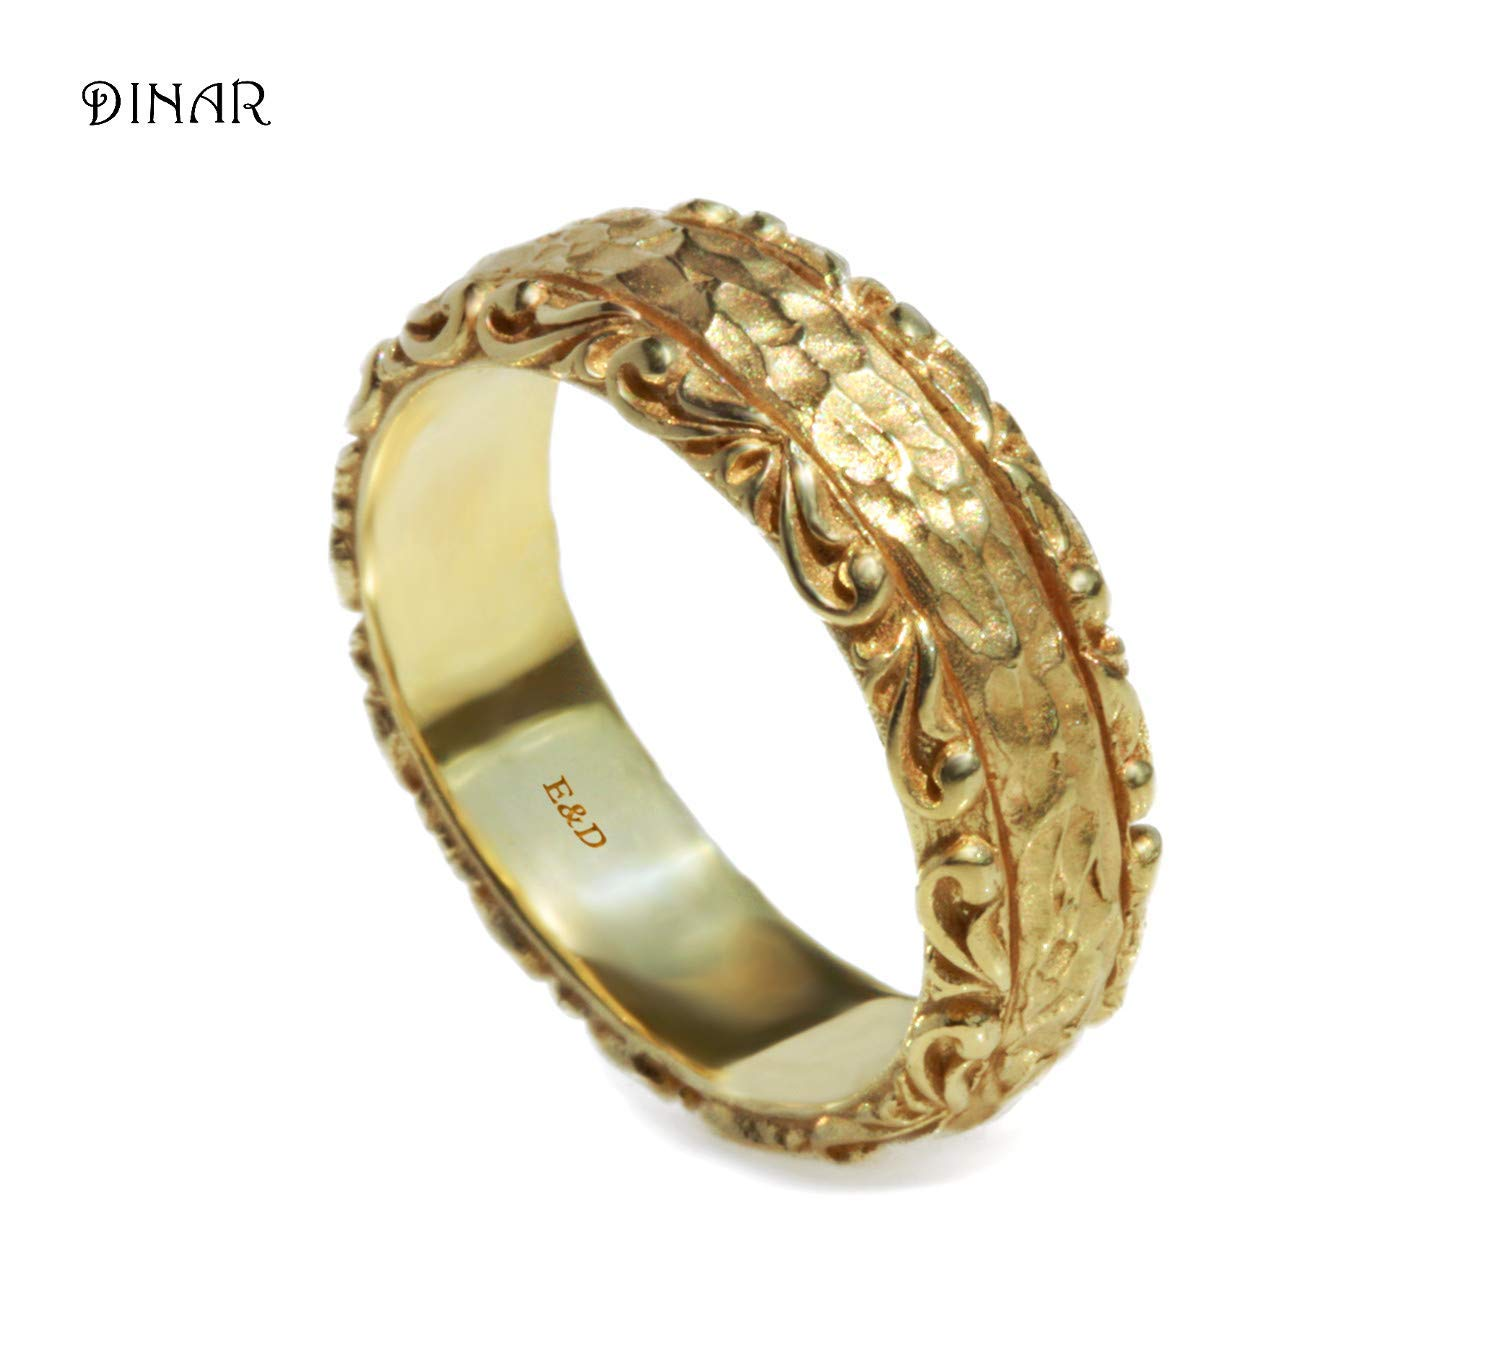 Amazon Hammered Antique Style Textured Engraved Scrolls Leafs Artisan Wide Handmade Womens 14k 18k Gold Wedding Band Ring: Wide Gold Wedding Rings Women At Websimilar.org